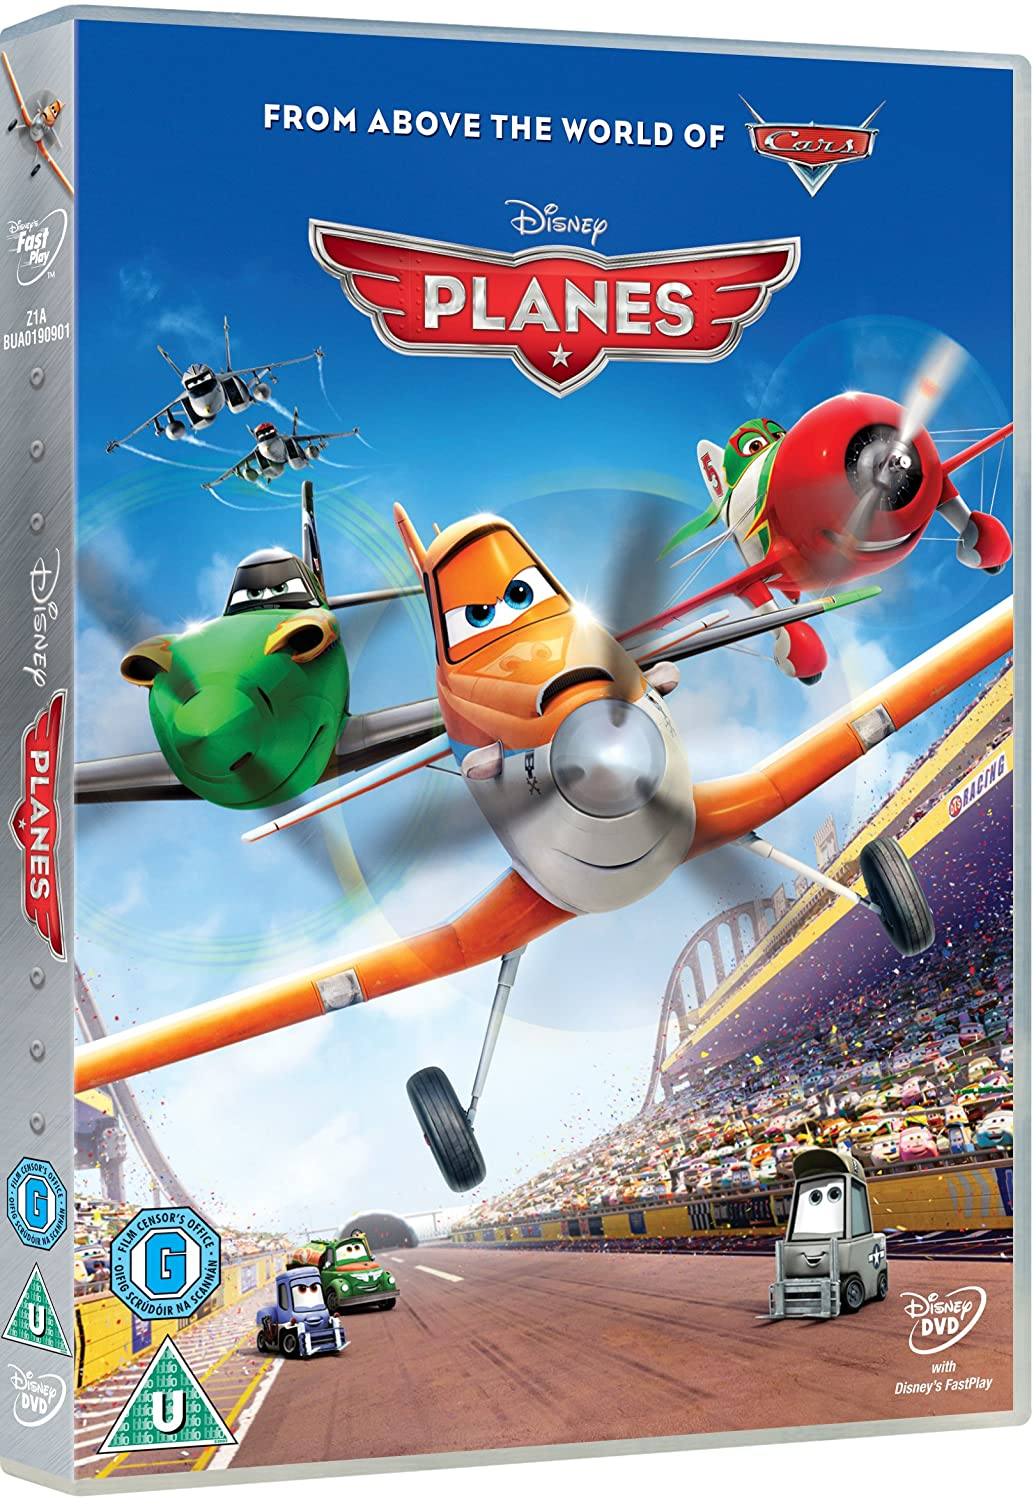 Cheapest DVD.Planes.jpg